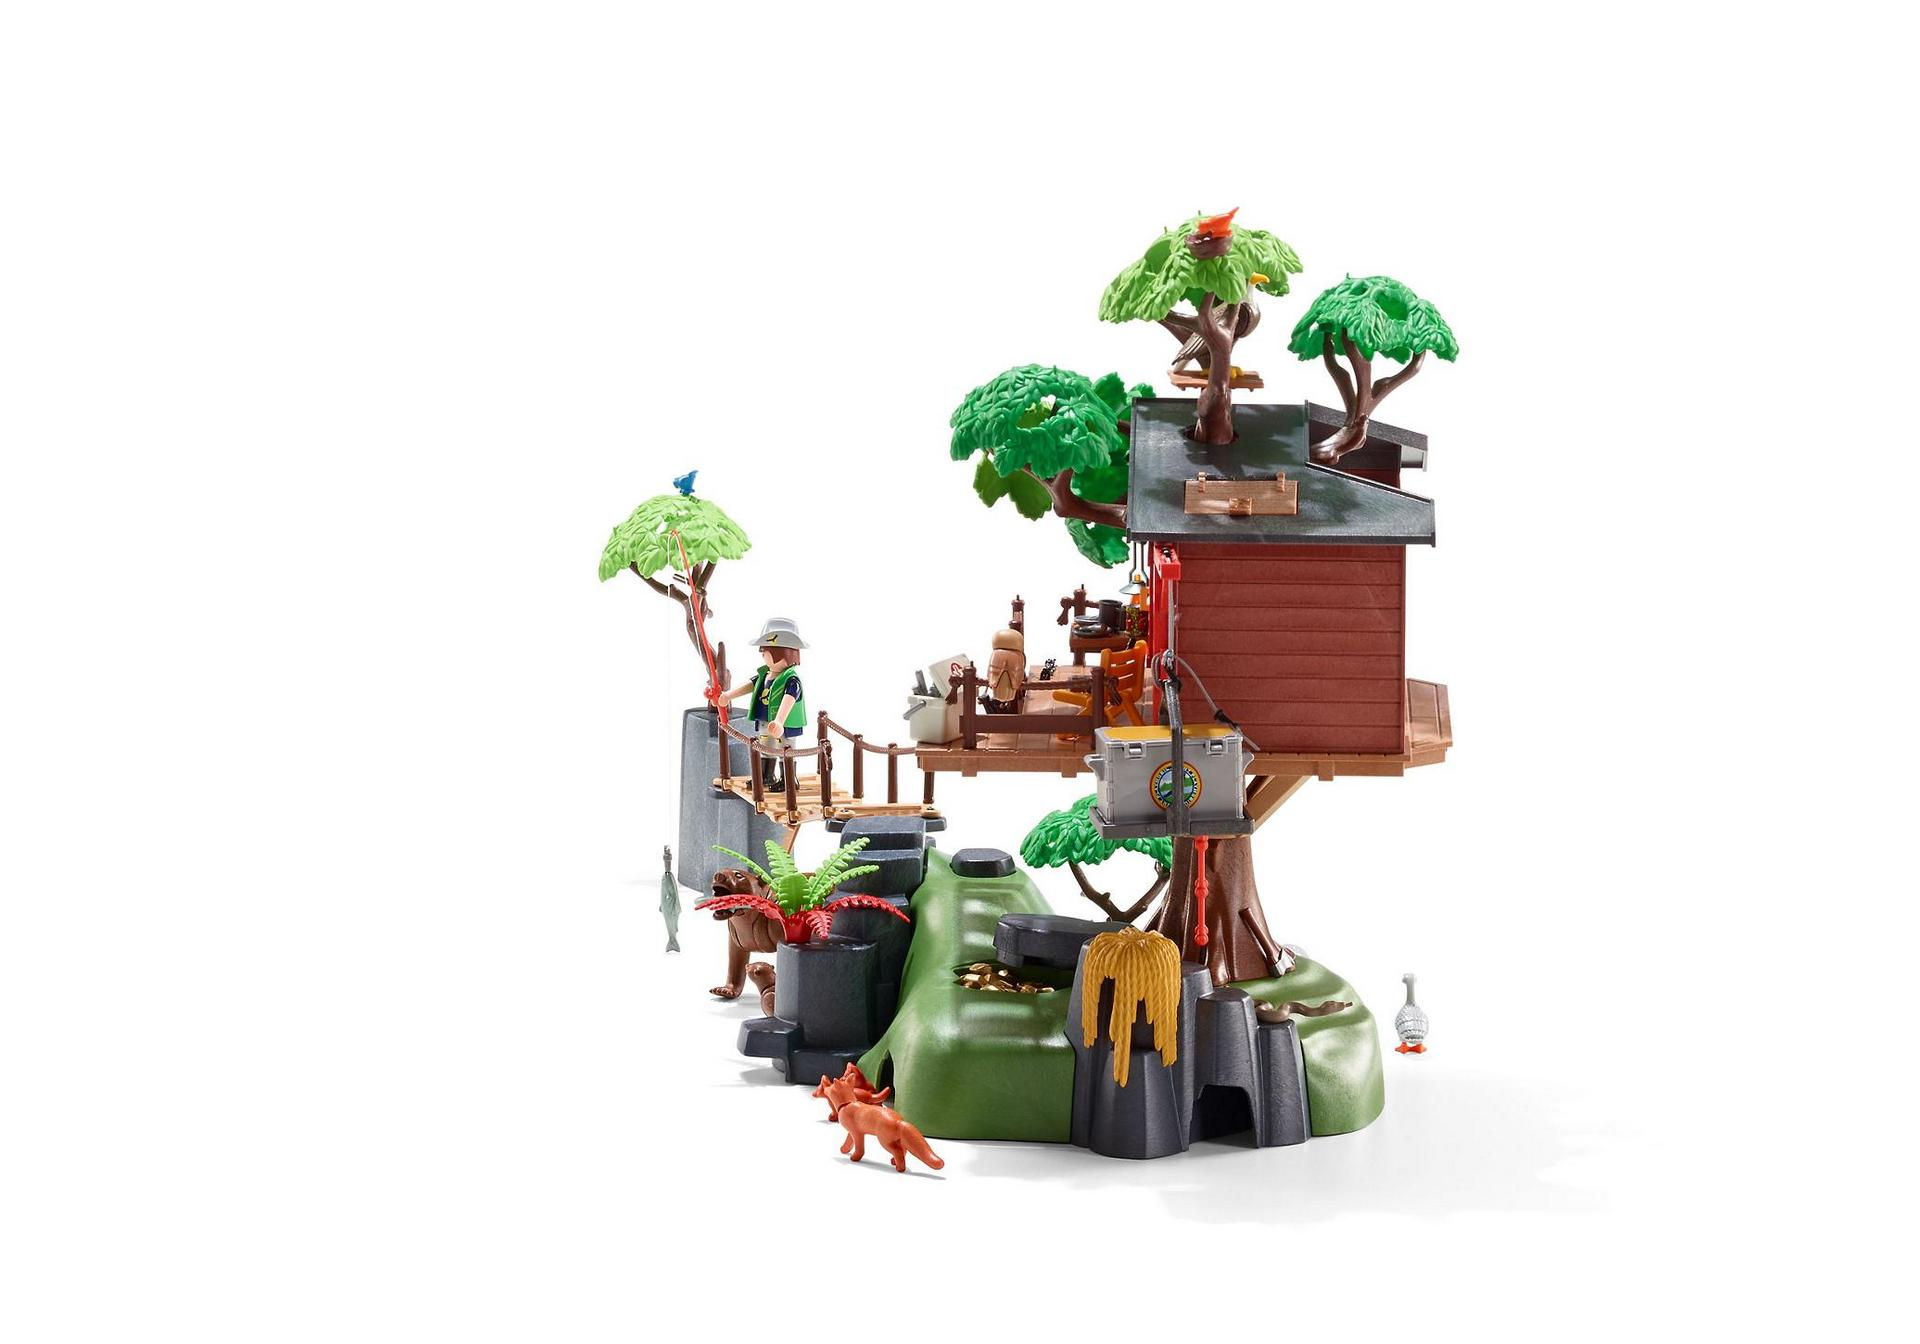 Ausmalbilder Playmobil Wild Life : Adventure Tree House 5557 Playmobil Estonia